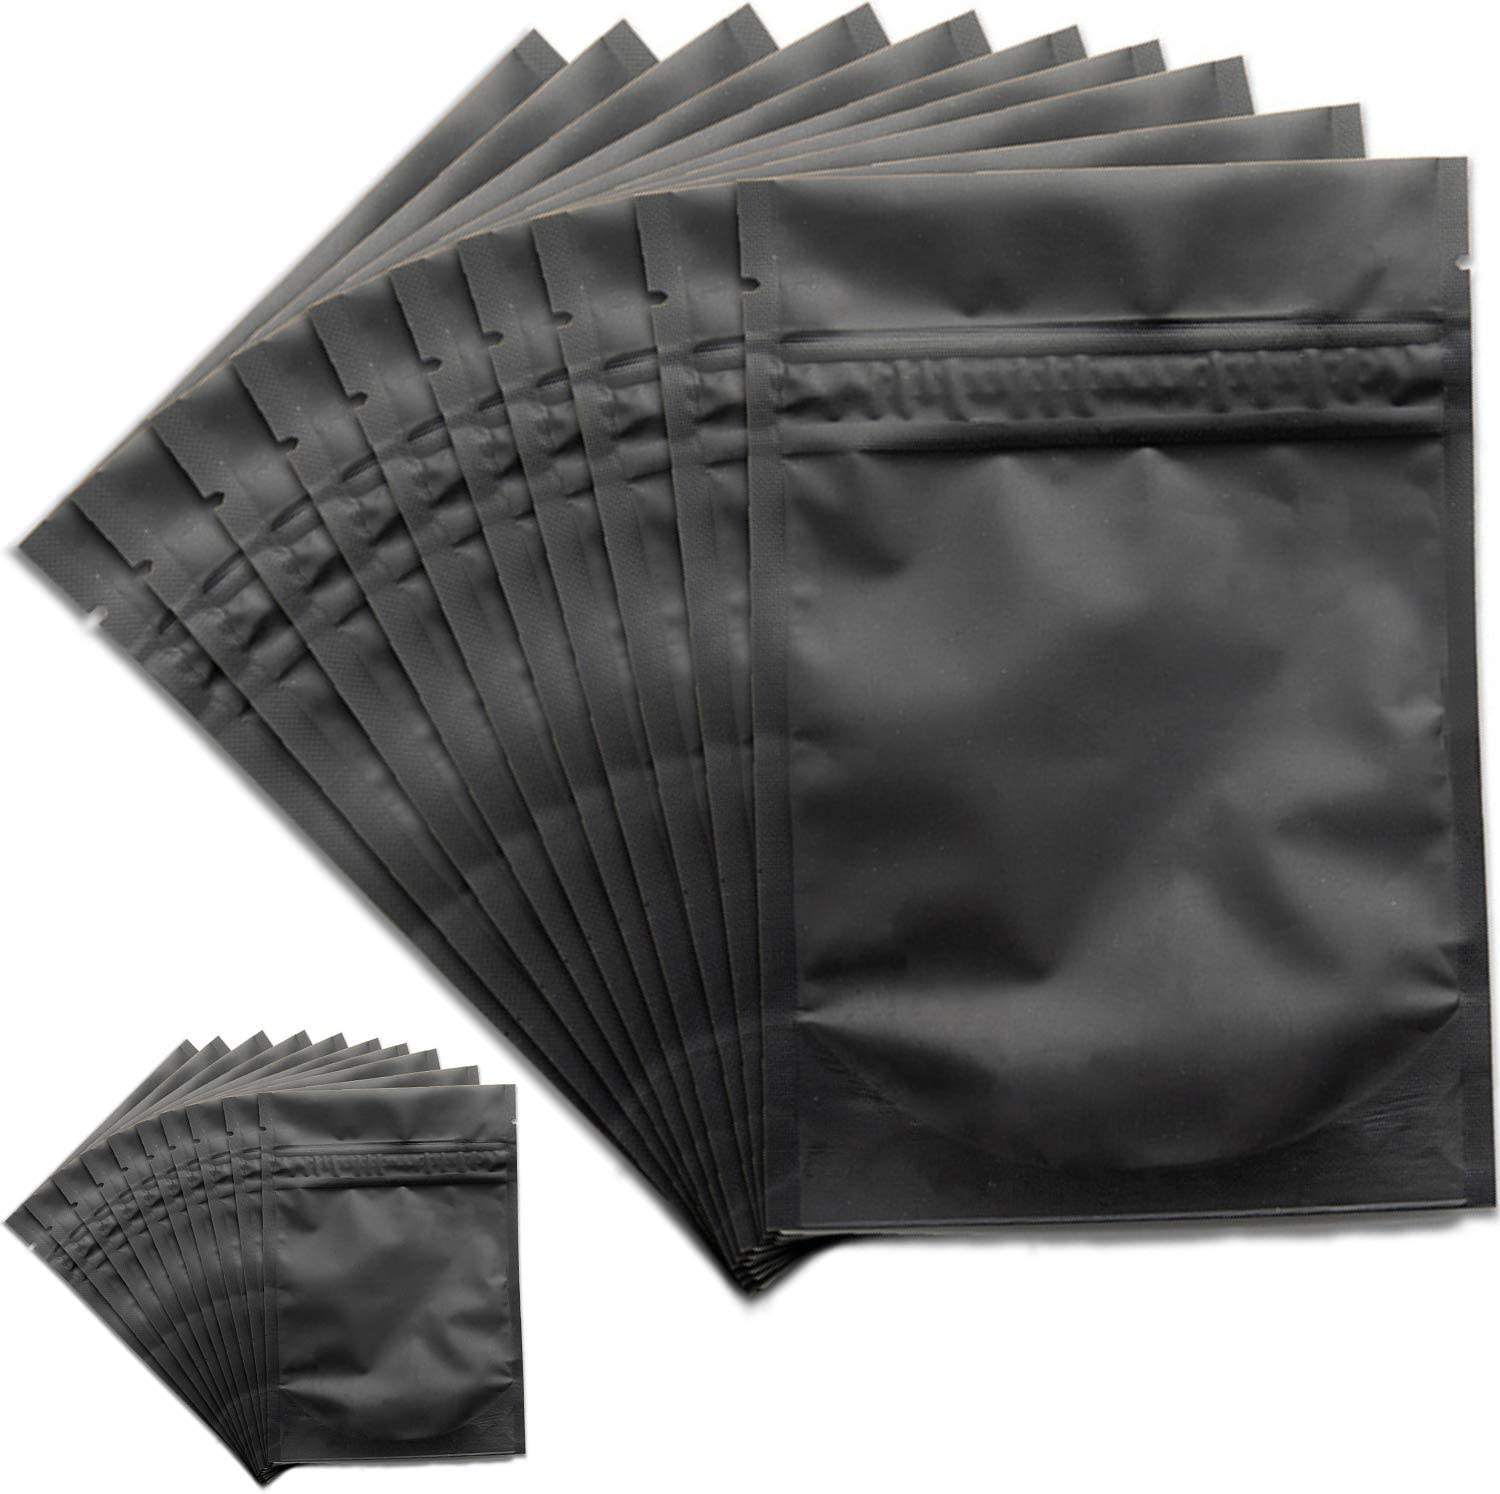 food grade packaging supplies resealable ziplock wedding party favor bags 100-4 oz black stand up pouches foil lined black storage bags